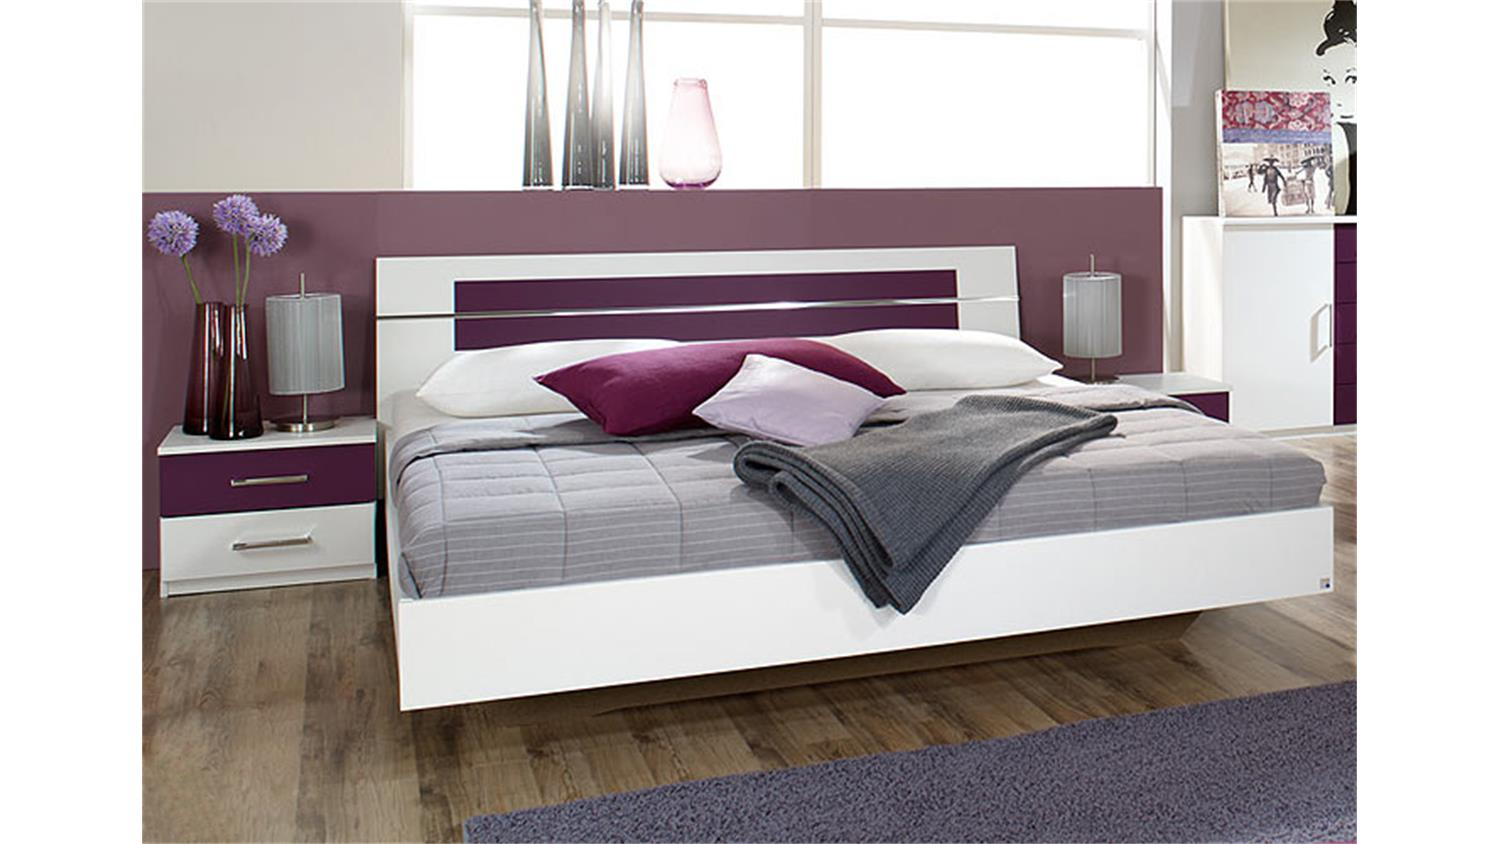 bettanlage burano in wei und brombeer bett 180x200 2 nakos. Black Bedroom Furniture Sets. Home Design Ideas